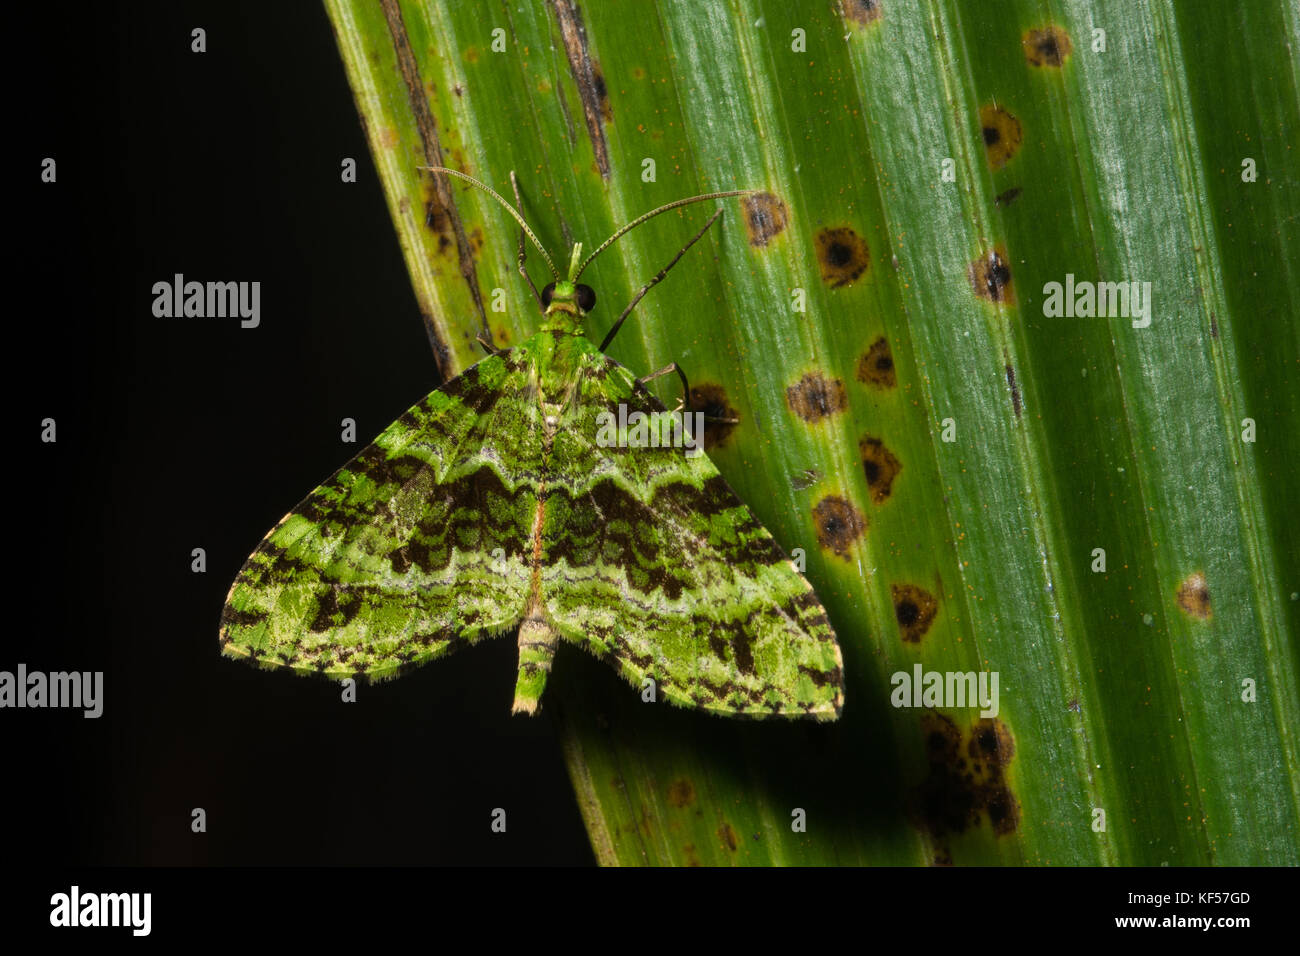 A small little moth that camouflages itself as a mos or lichen. - Stock Image